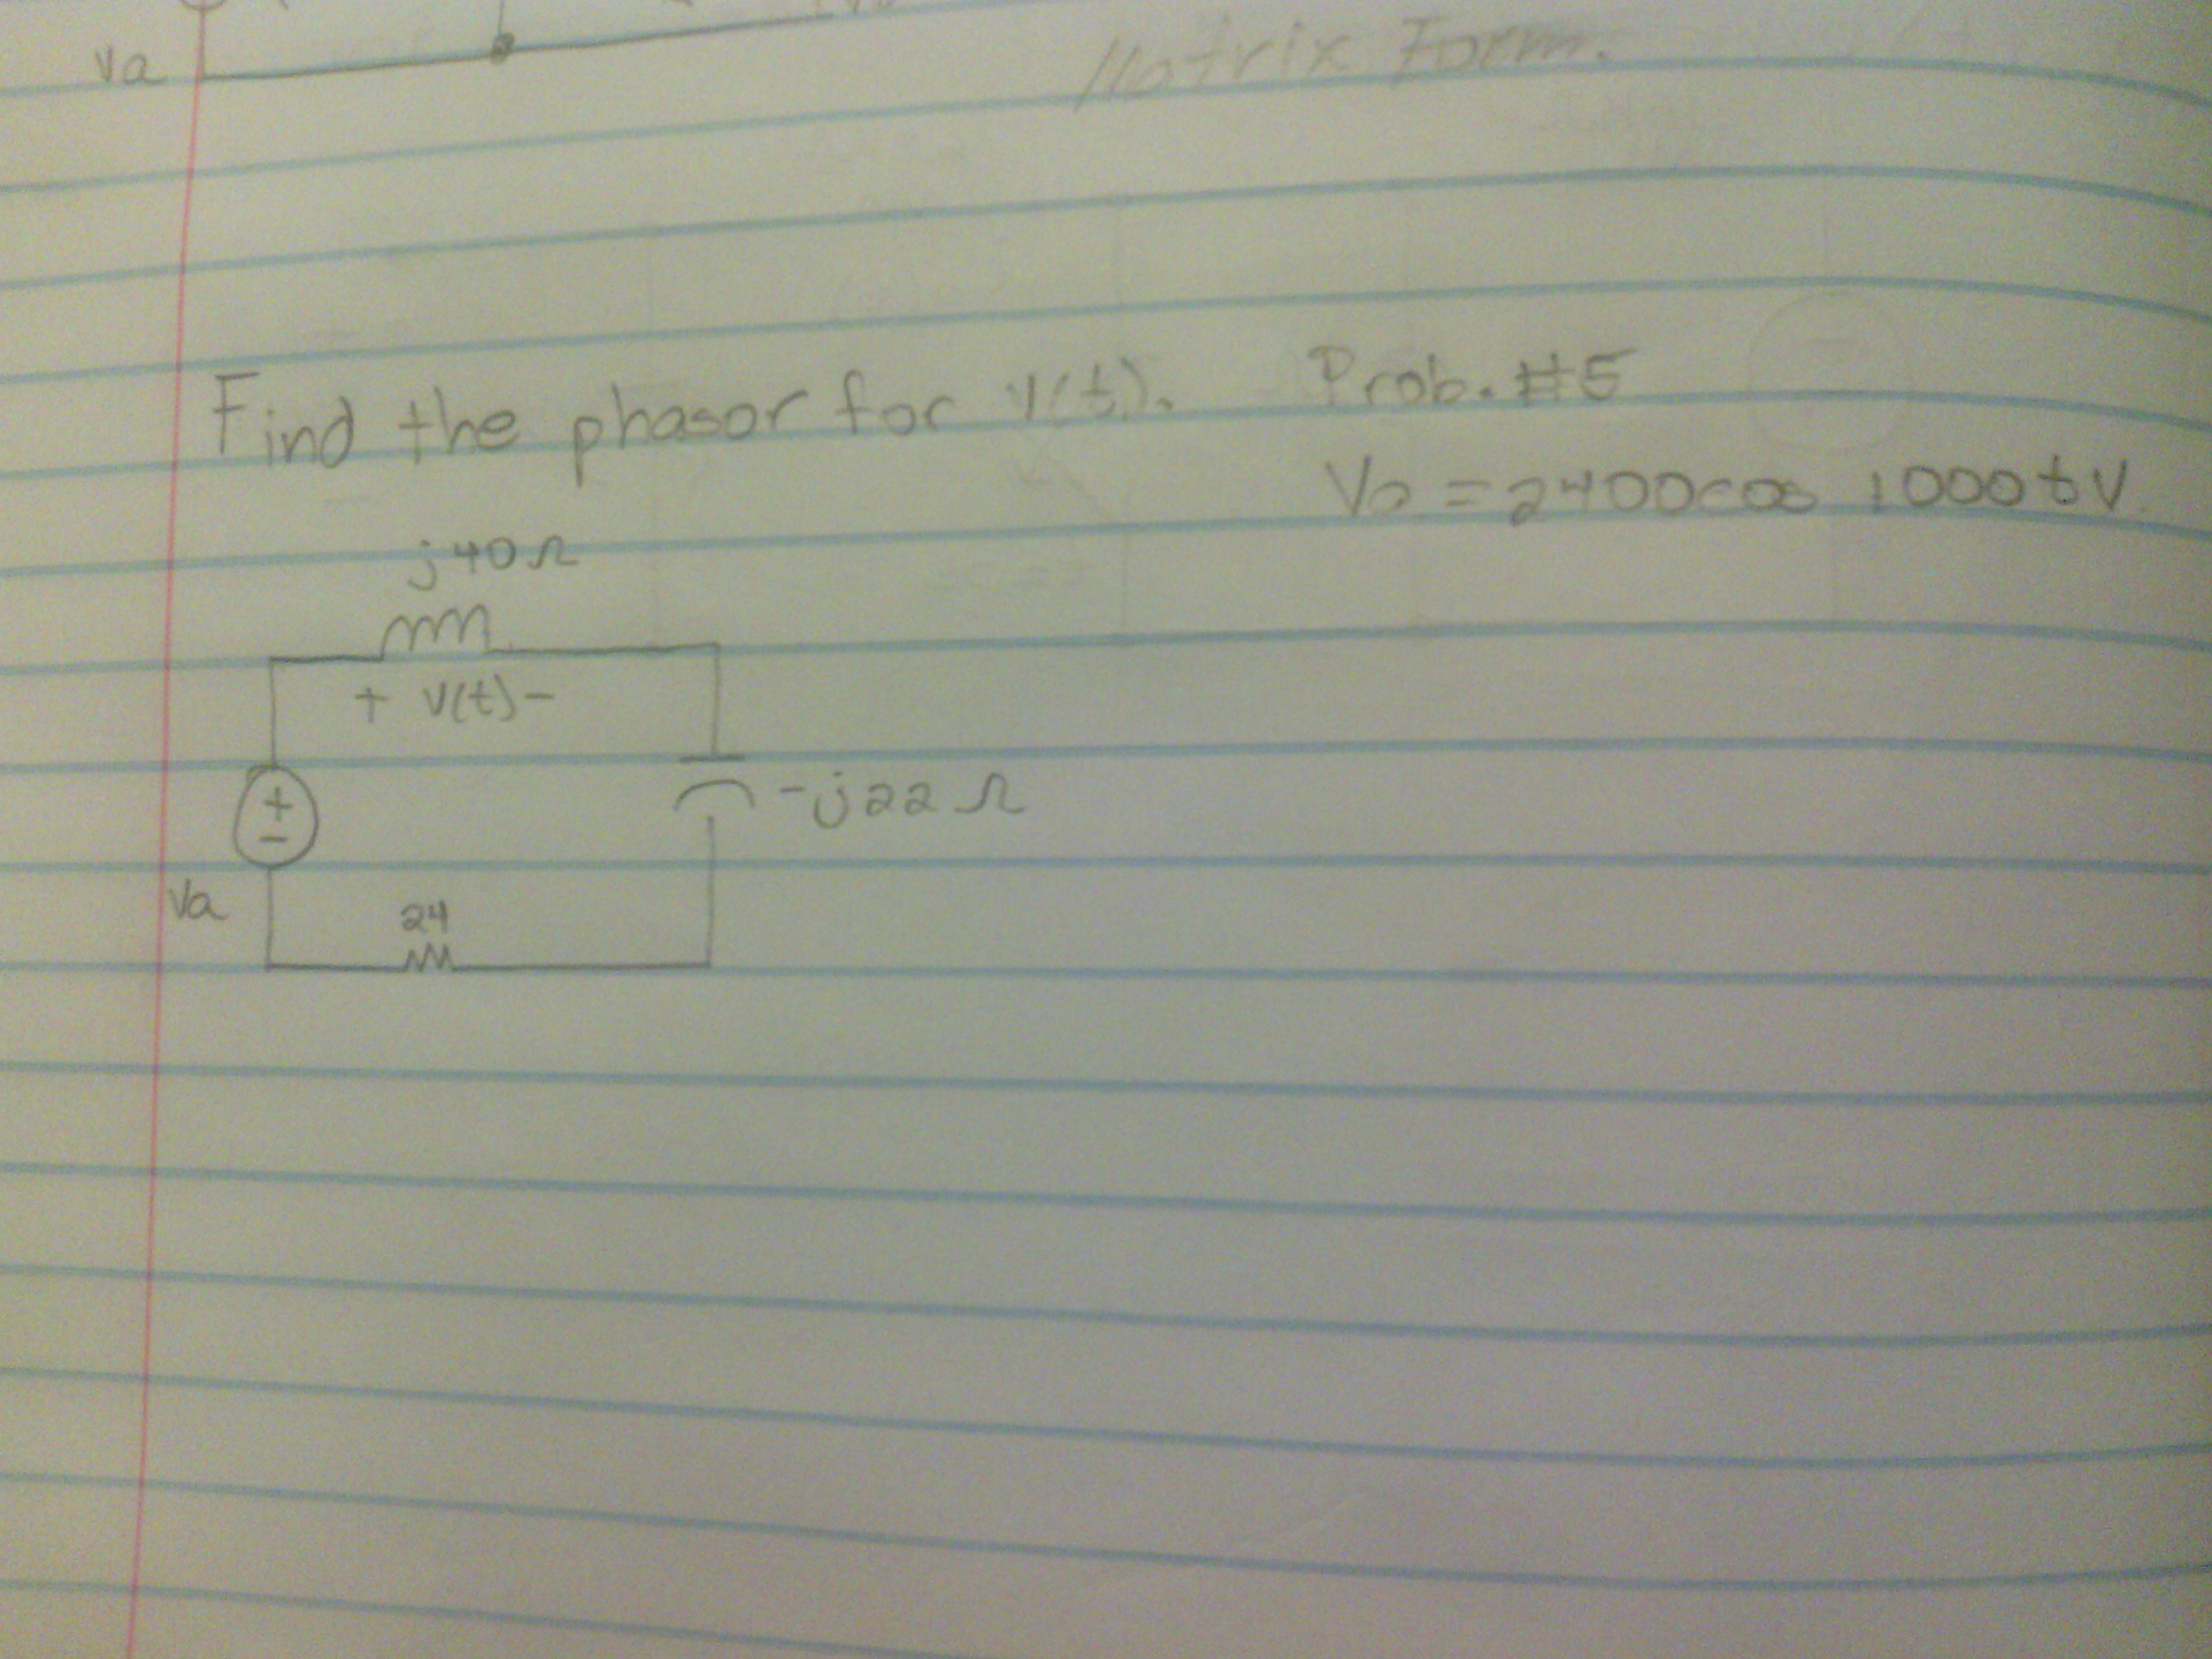 Find the phasor for v(t).